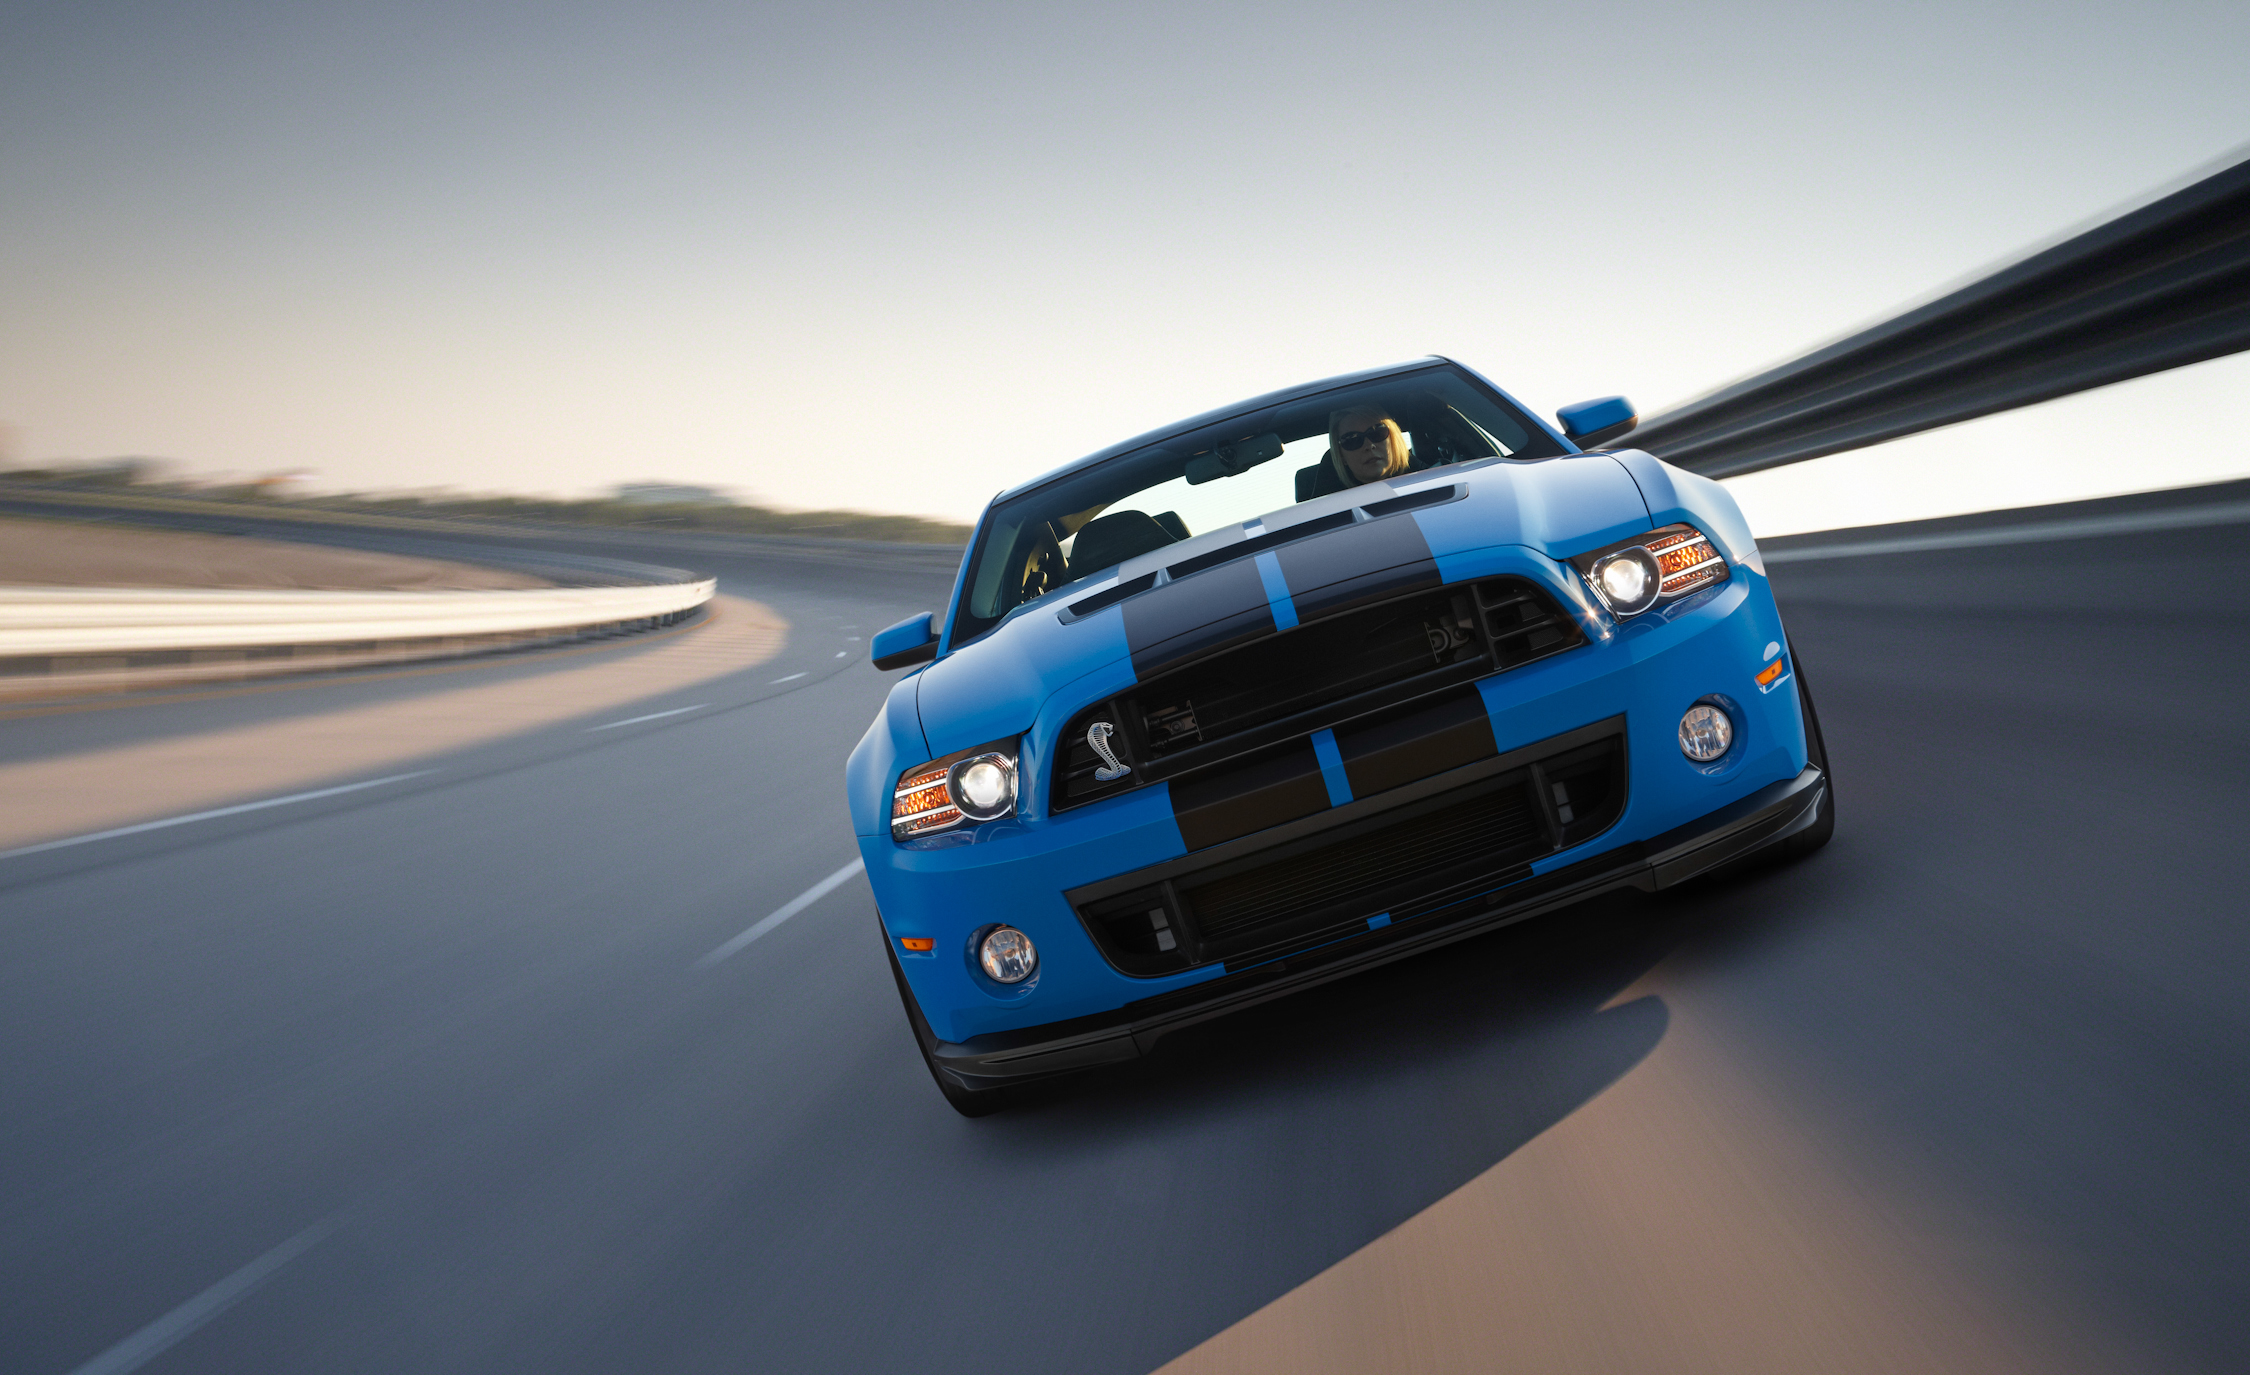 2013 Ford Mustang Shelby GT500 Blue Test Drive Front View (View 11 of 47)